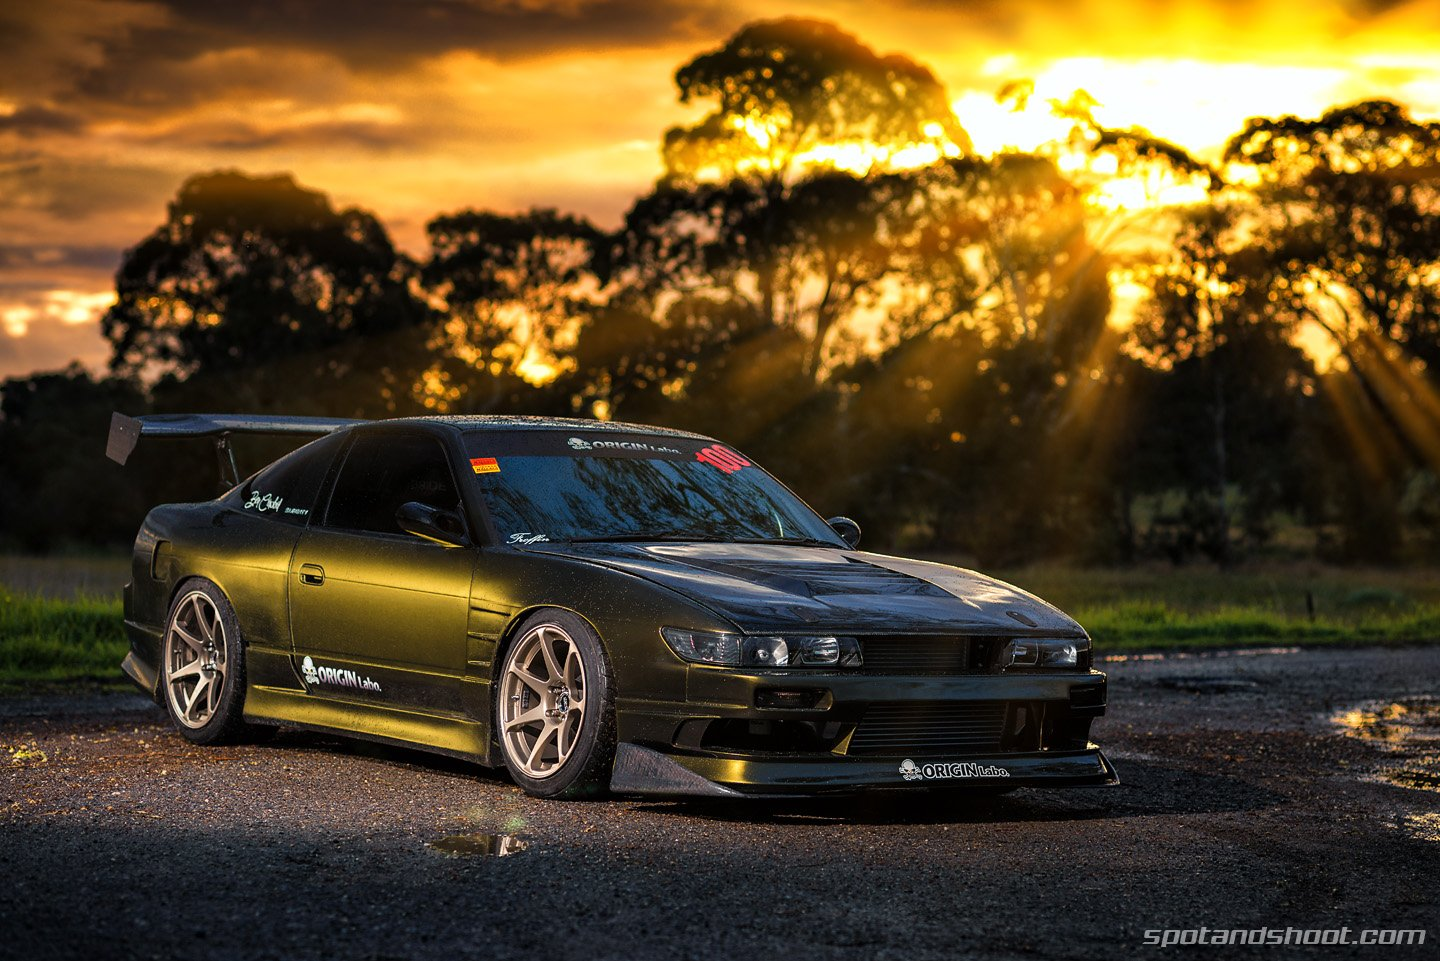 Hd Jdm Car Wallpapers Nissan 180sx Coupe Tuning Cars Japan Wallpaper 1440x961